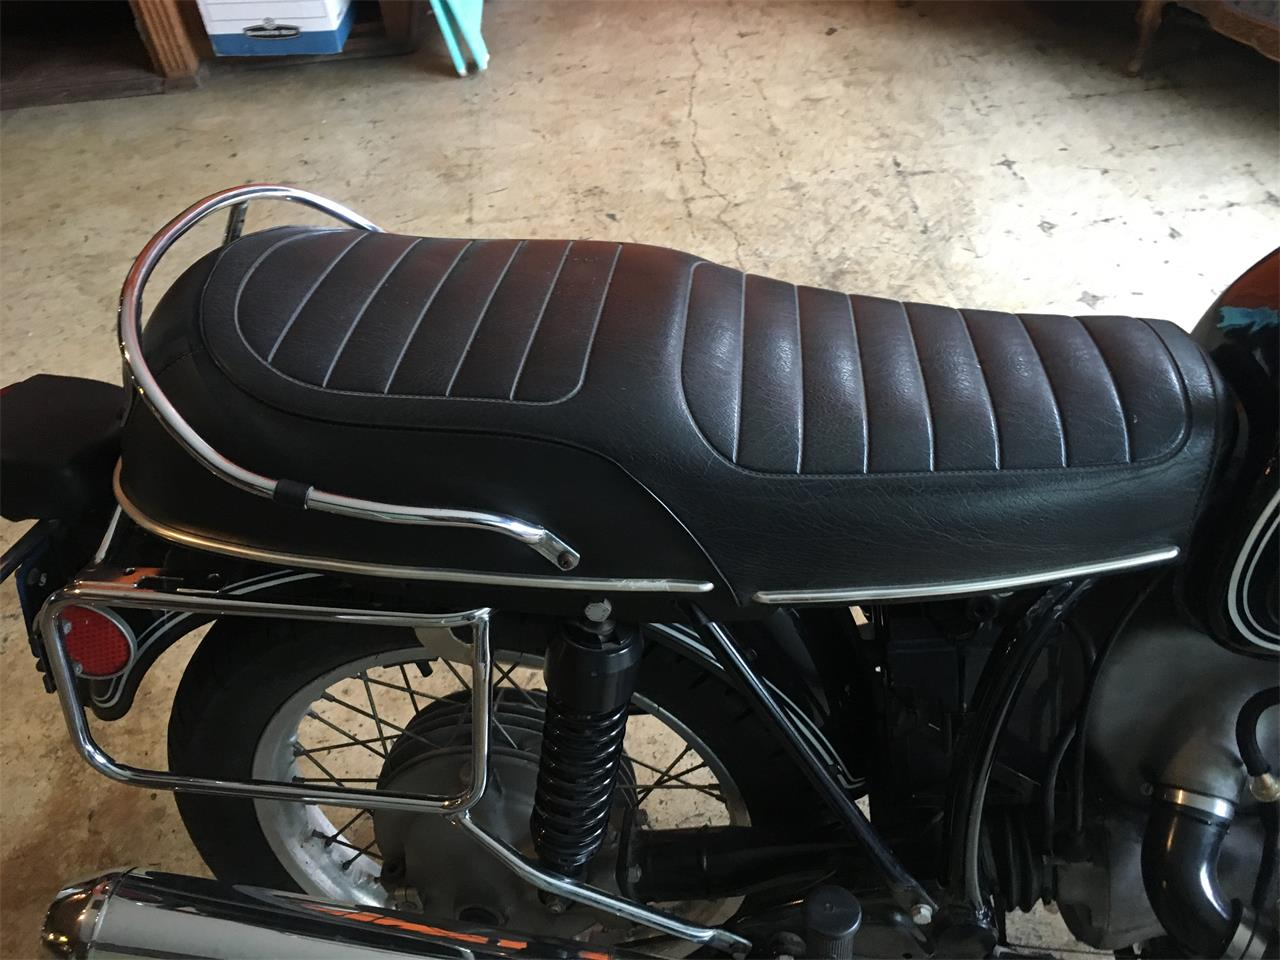 Large Picture of '75 BMW Motorcycle located in California - $3,150.00 - Q67F